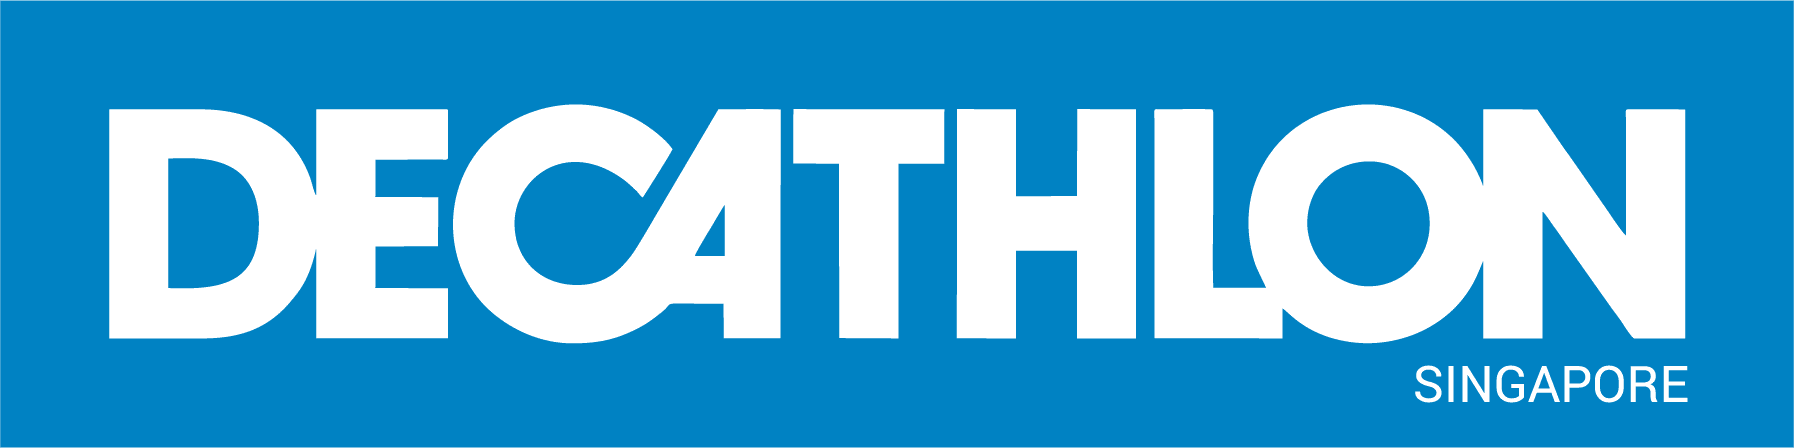 Decathlon Singapore logo